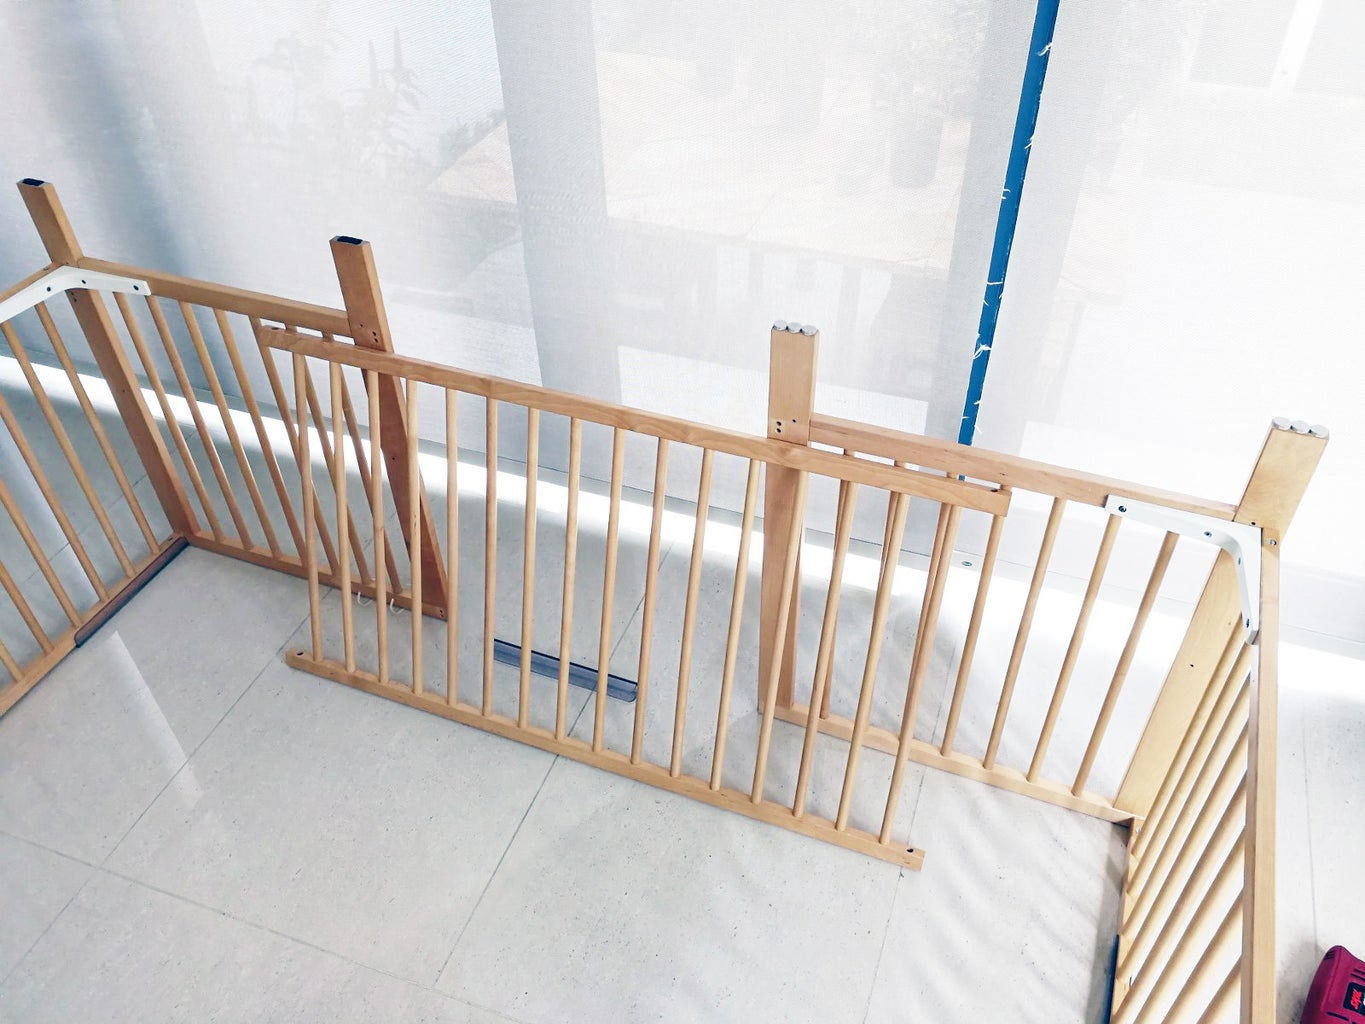 Assemble 3 Sides of the Playpen